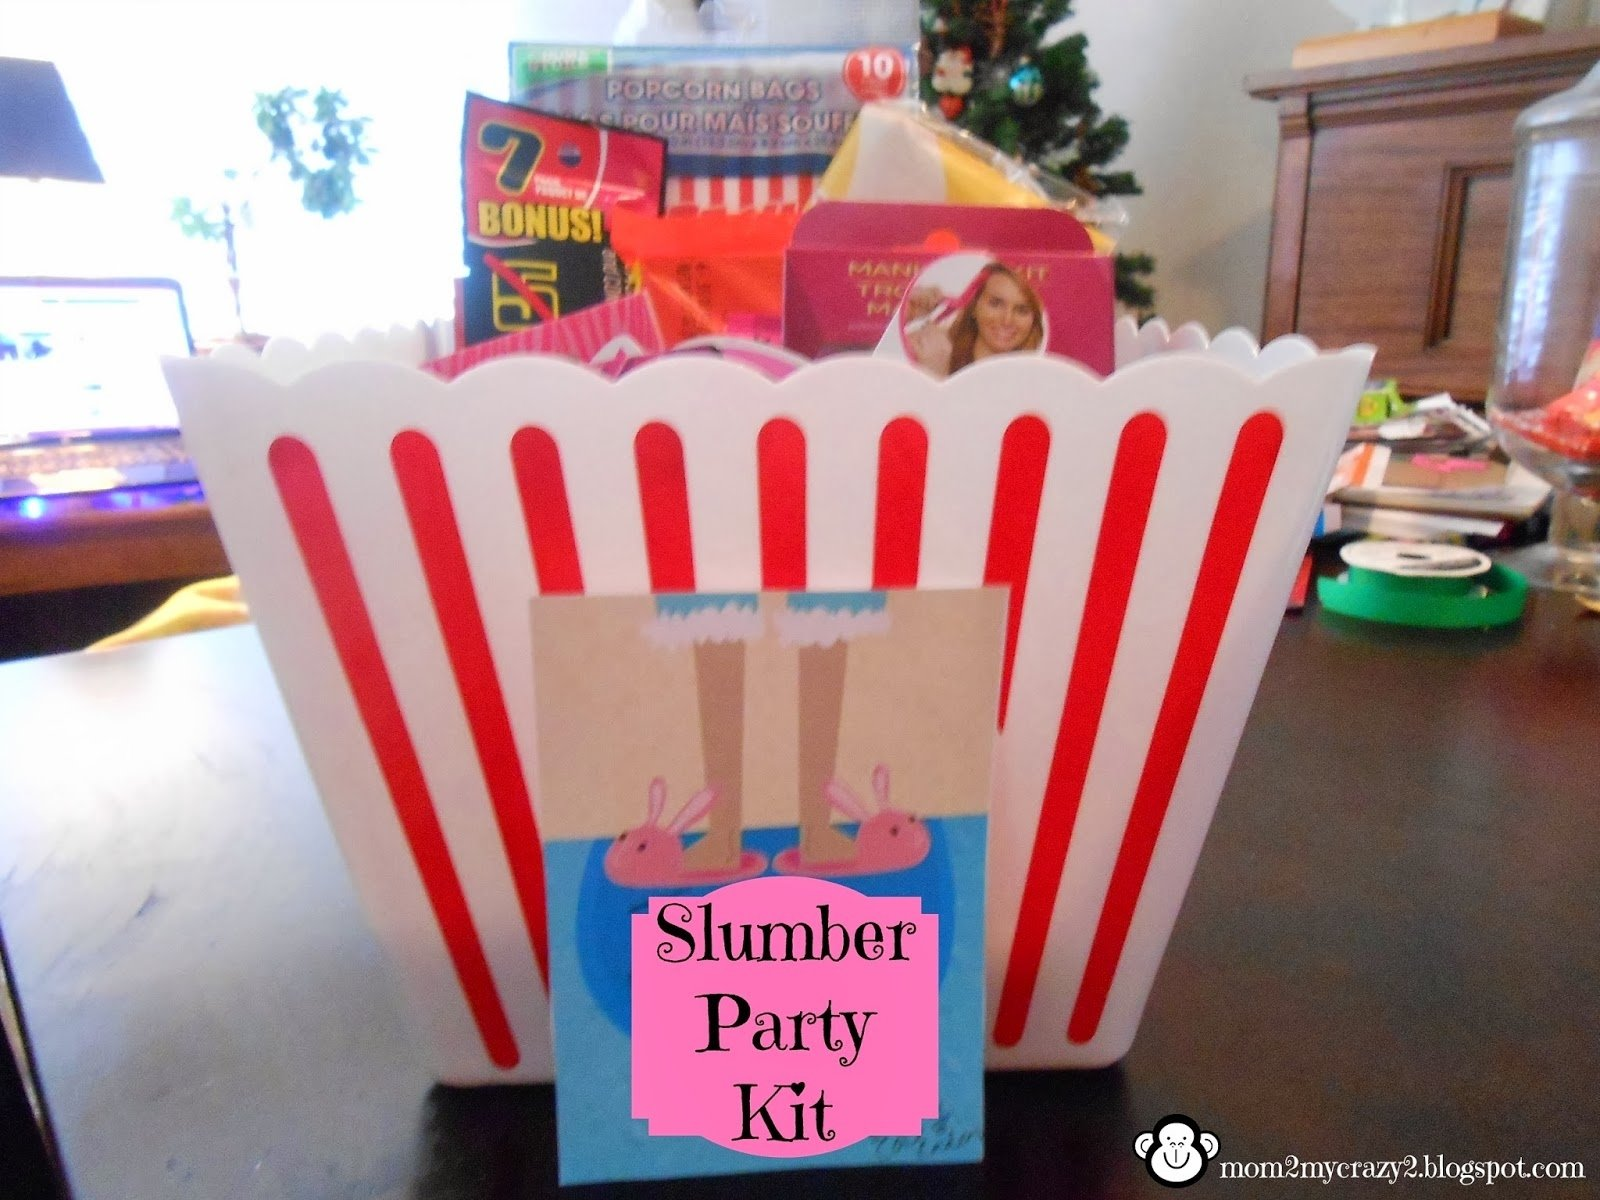 10 Perfect Birthday Party Ideas For Boys Age 10 running away ill help you pack unique gift time slumber 1 2020